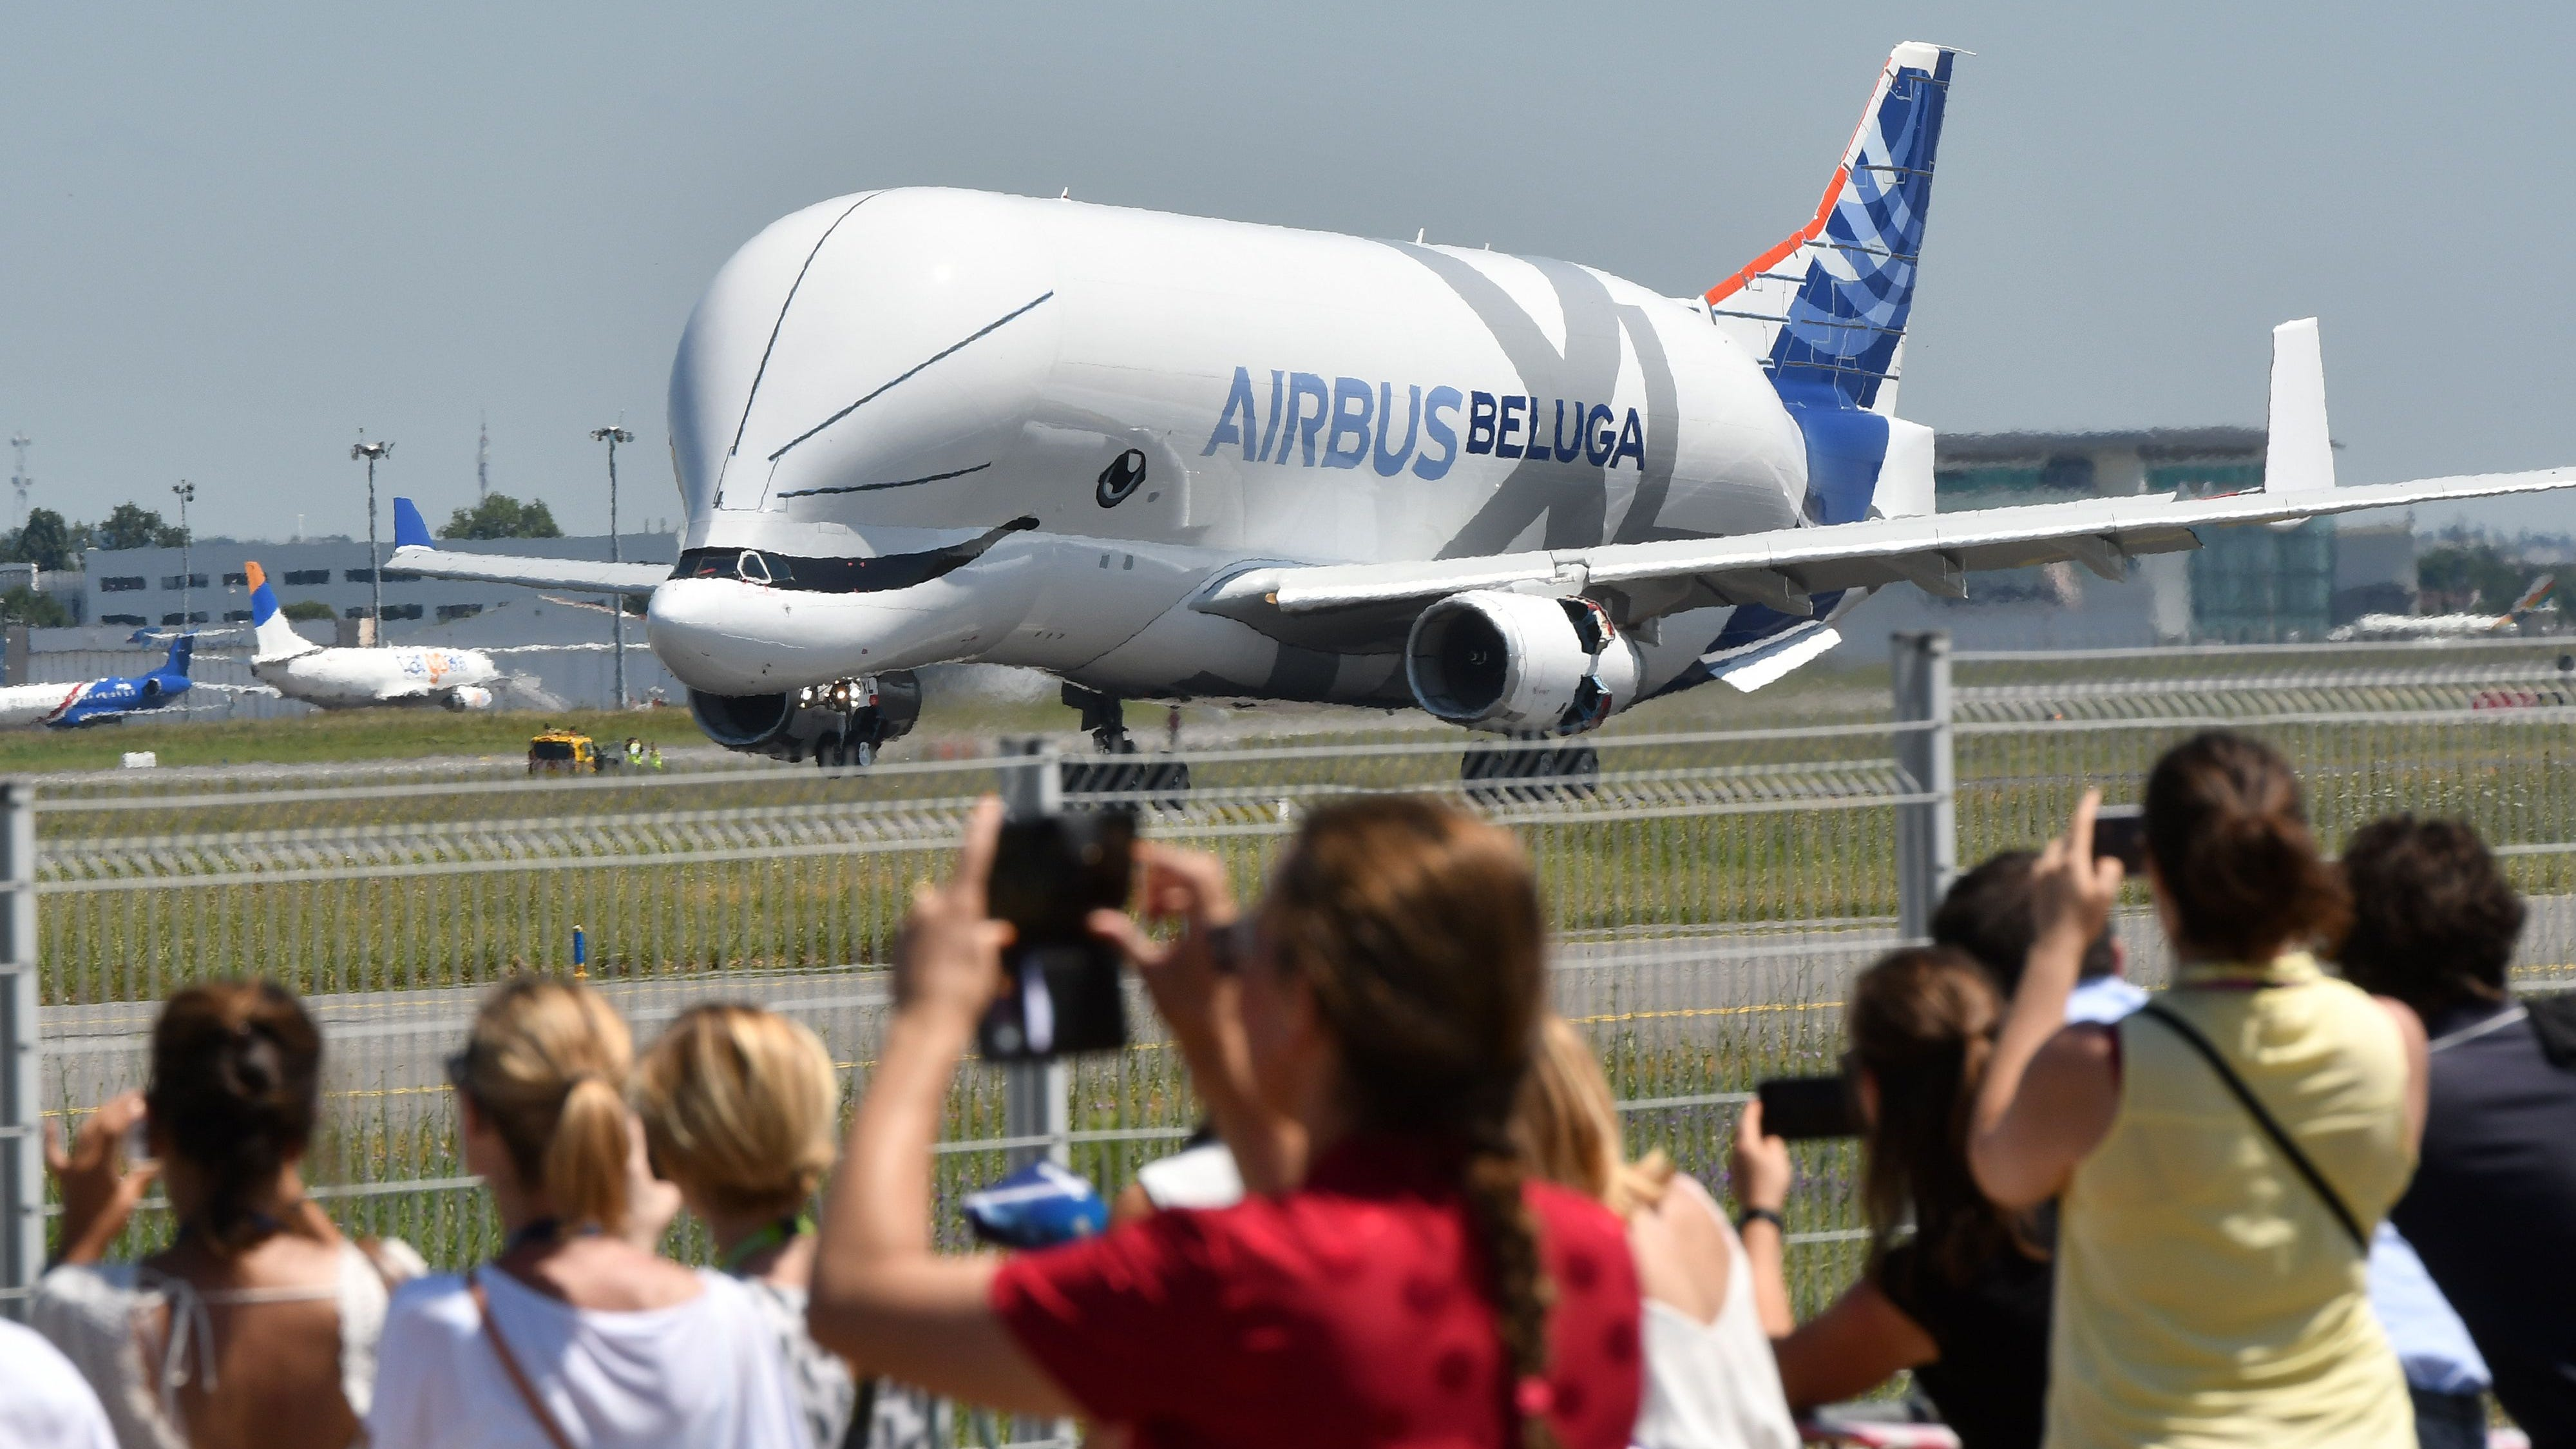 An Airbus 'BelugaXL' aircraft comes into land at Toulouse-Blagnac on July 19, 2018, after its maiden test flight of some four hours.